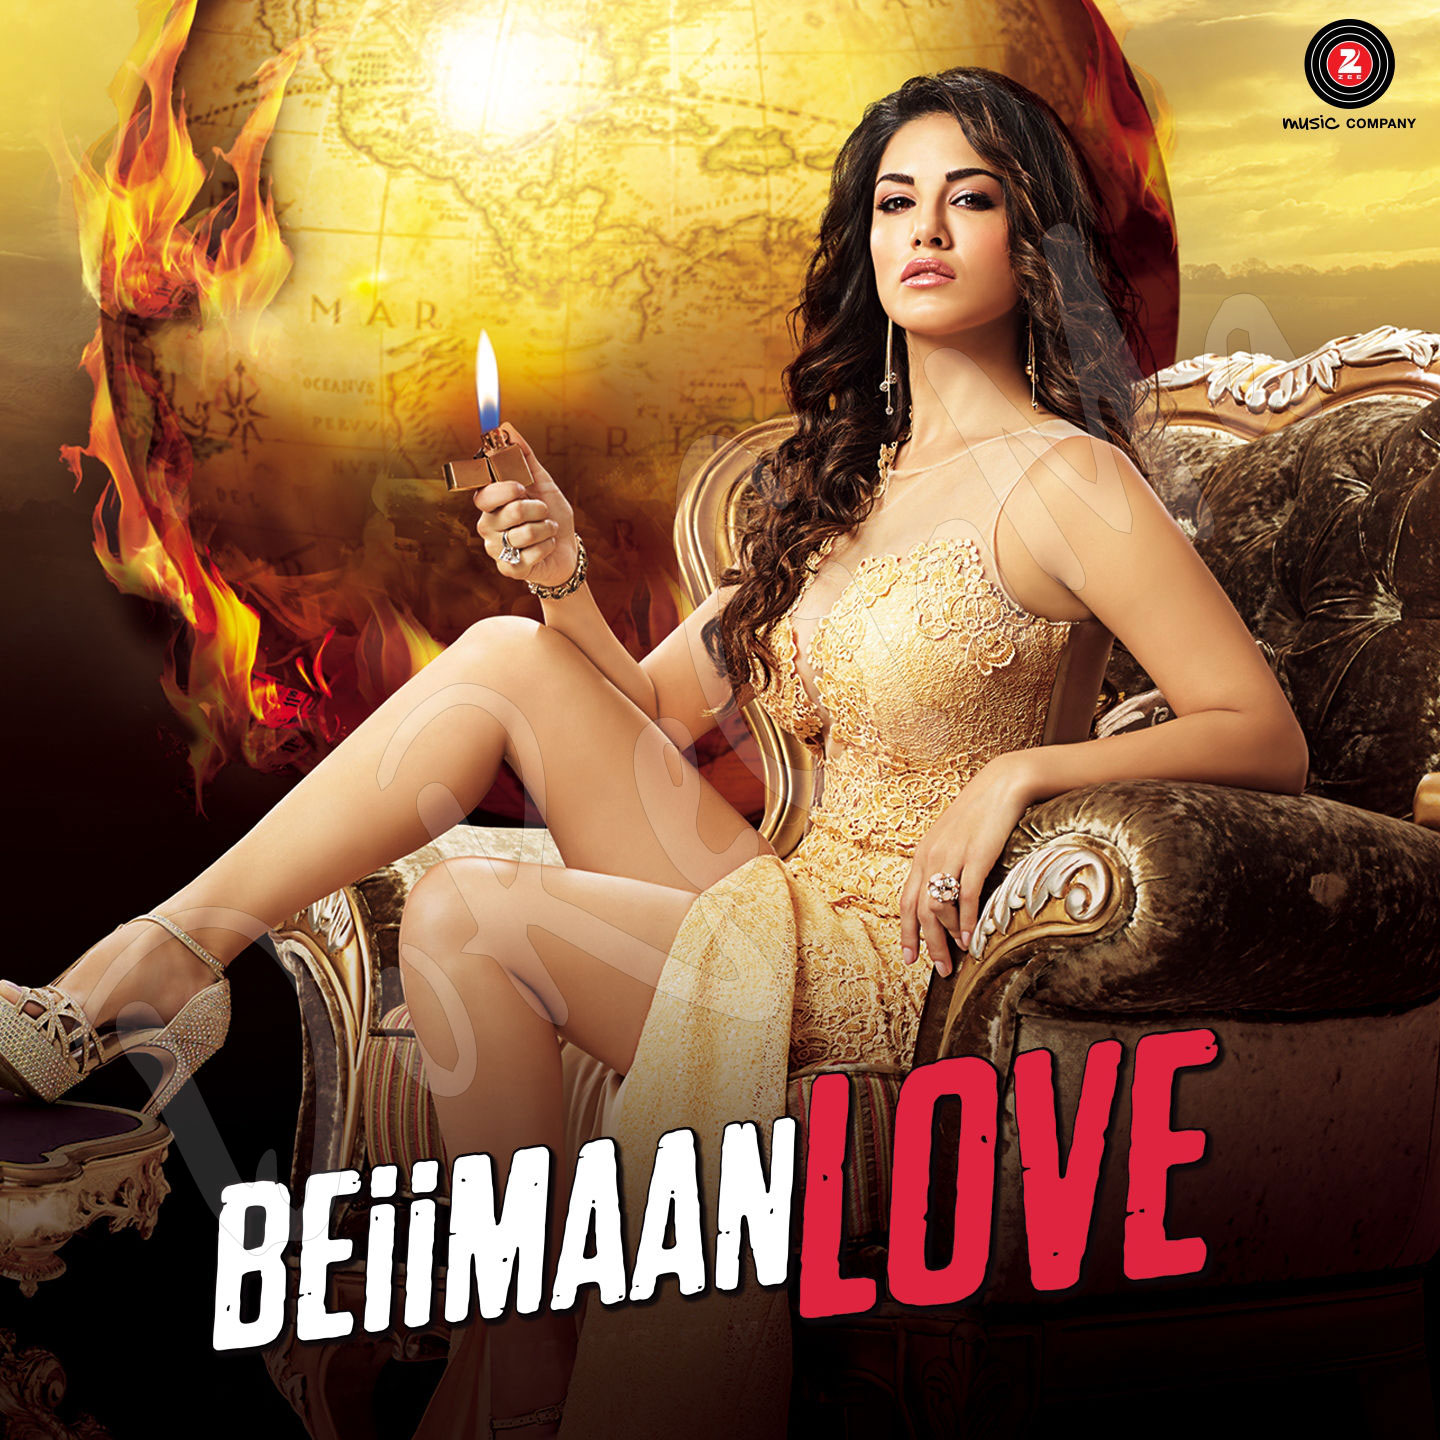 Beiimaan-Love-2016-Movie-Songs-CD-Front-Cover-Poster-wallpaper-HD